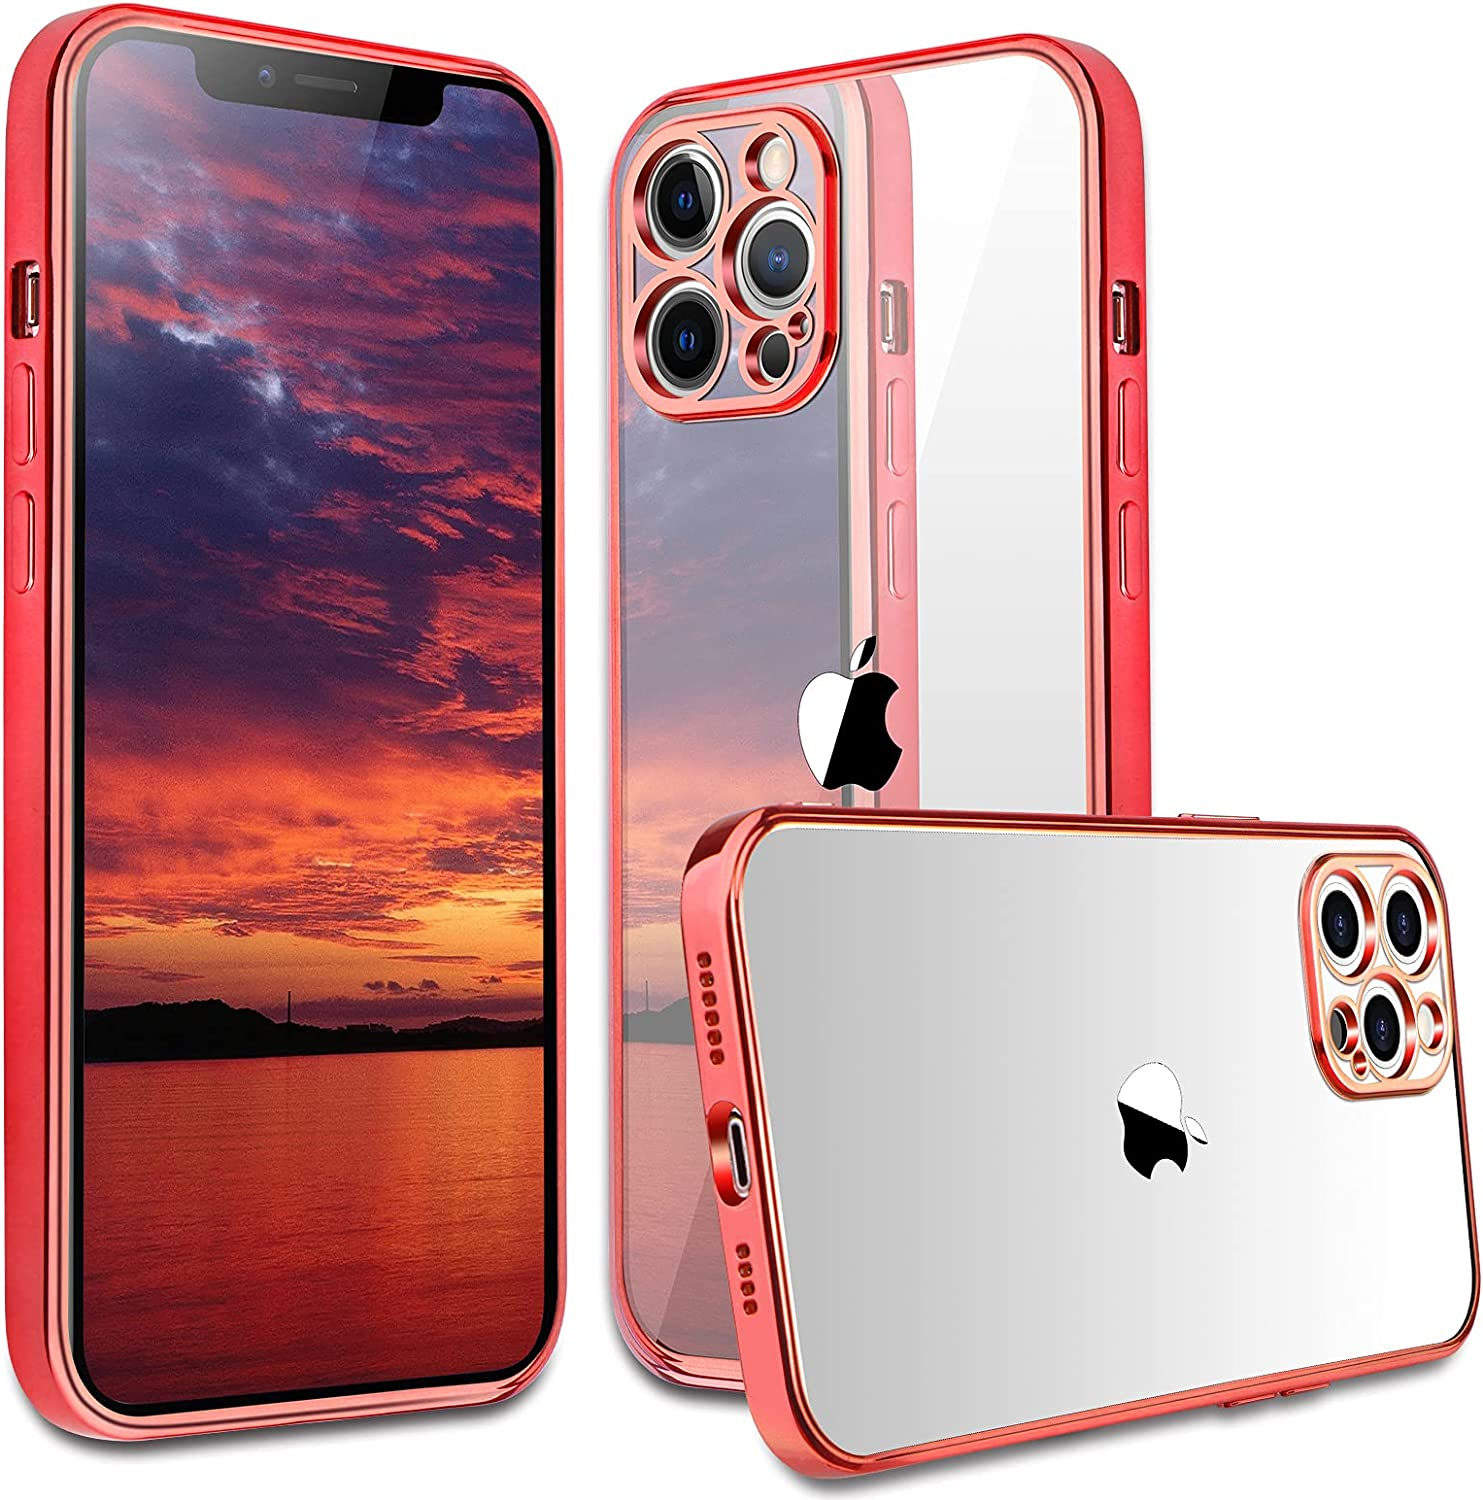 Compatible with iPhone 12 pro max Case, peafowl Clear Slim Soft Full Coverage Protective TPU Silicone Cell Phone Case for iPhone 12 pro max Red (6.7)